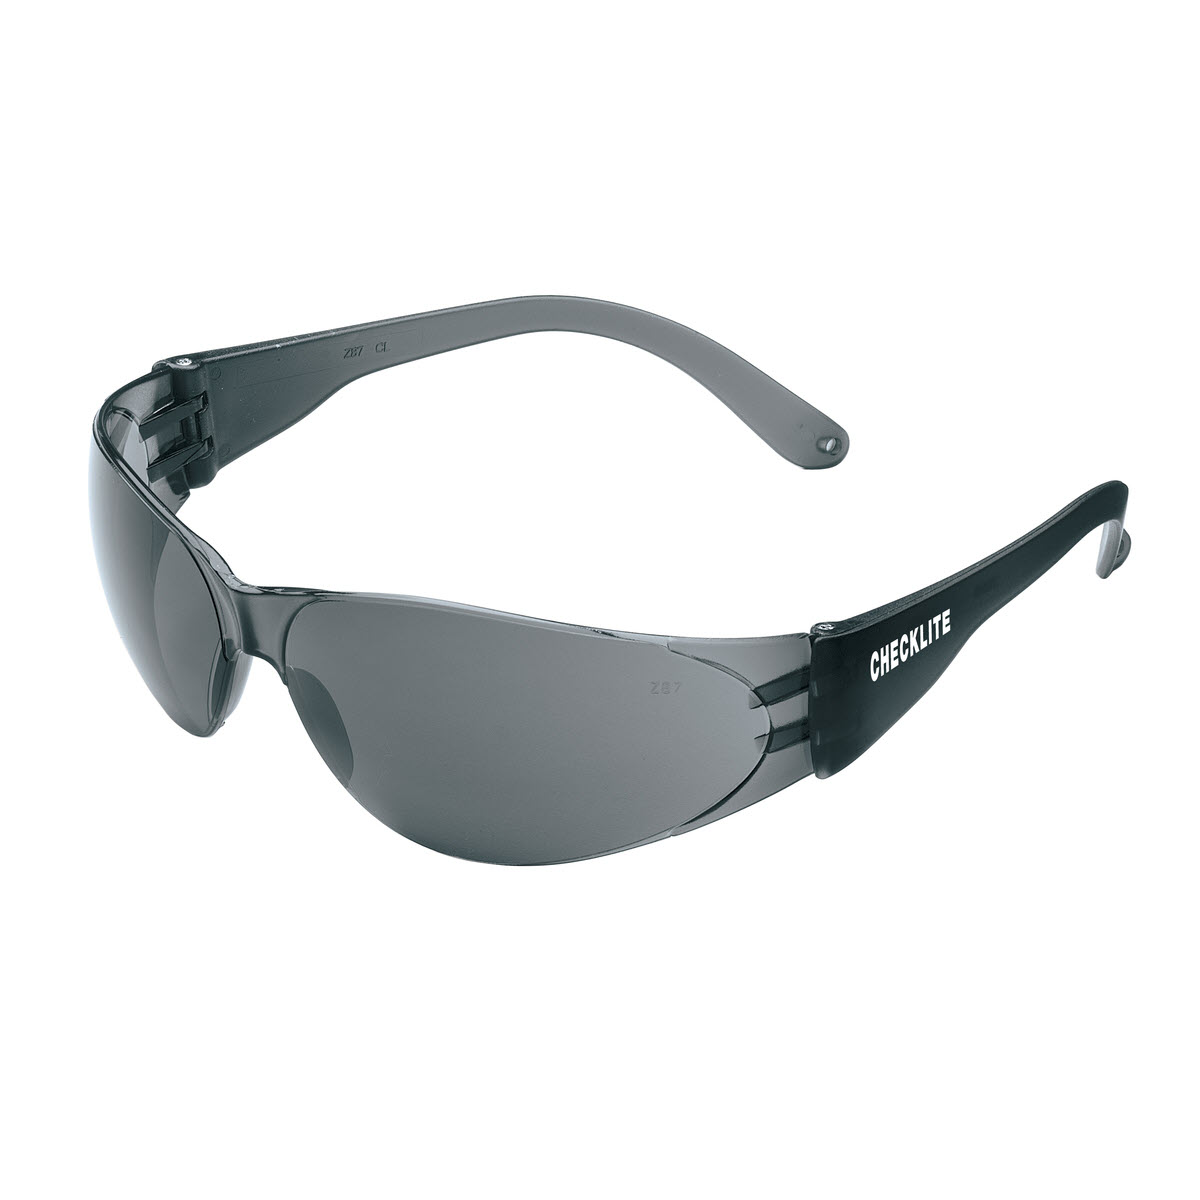 Checklite® CL1 Series Safety Glasses, Smoke Temples, Gray Lens